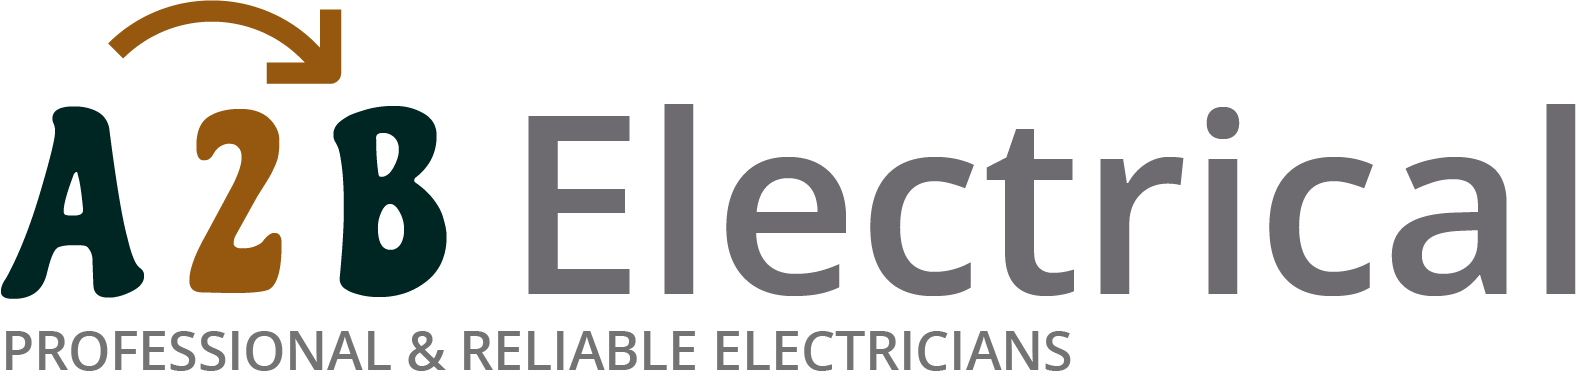 If you have electrical wiring problems in Walton On The Naze, we can provide an electrician to have a look for you.